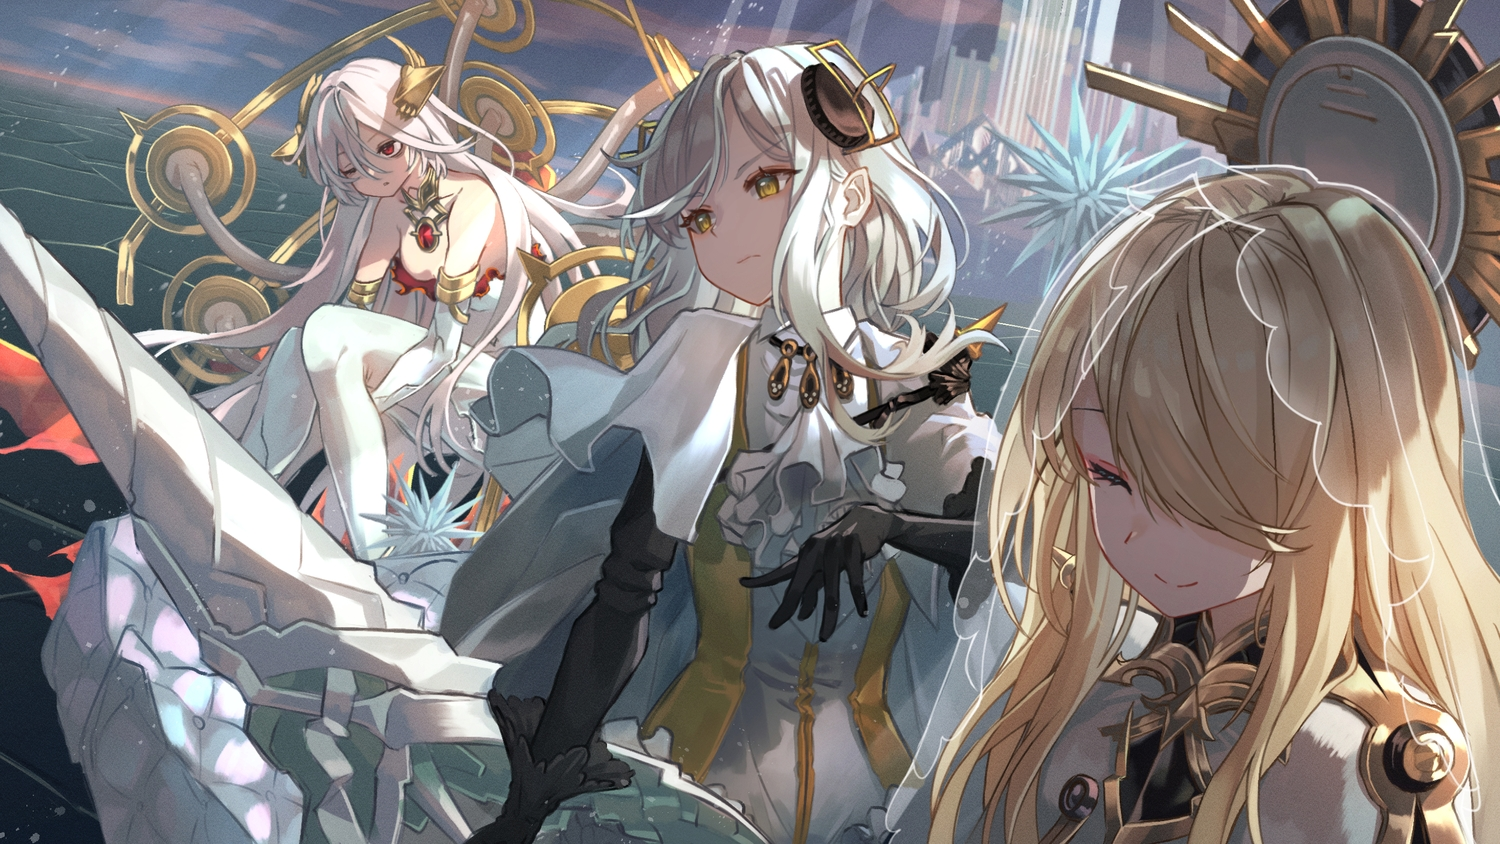 alchemy_stars blonde_hair carleen_(alchemy_stars) clouds gray_hair long_hair red_eyes roco_(rocoroco1115) sky spear tagme_(character) uriel_(alchemy_stars) weapon white_hair wink yellow_eyes